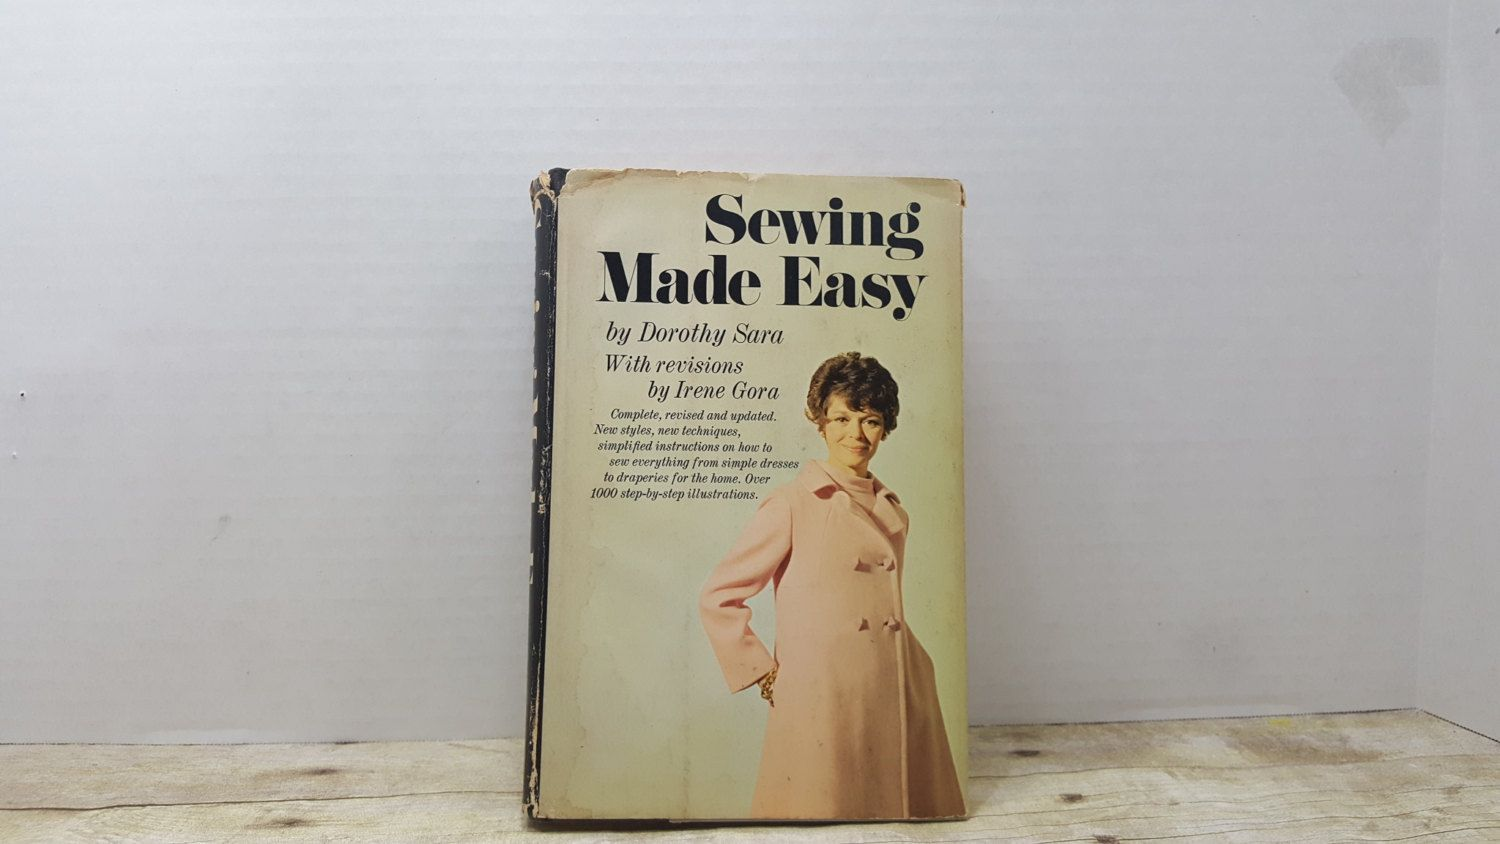 Sewing Made Easy, 1969, Dorothy Sara, Irene Gora, vintage sewing book by RandomGoodsBookRoom on Etsy